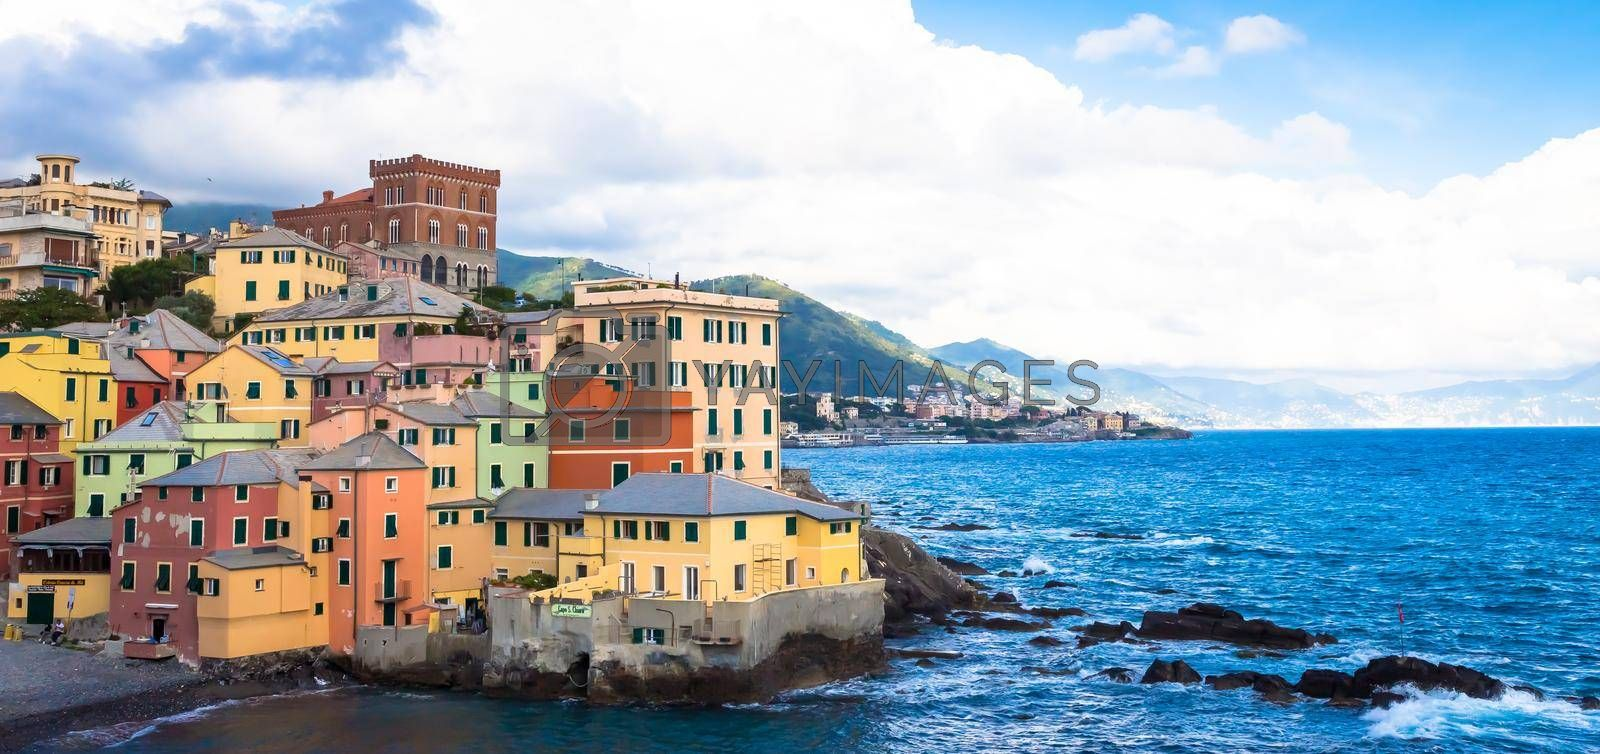 Royalty free image of Boccadasse marina panorama  in Genoa, Italy by Perseomedusa